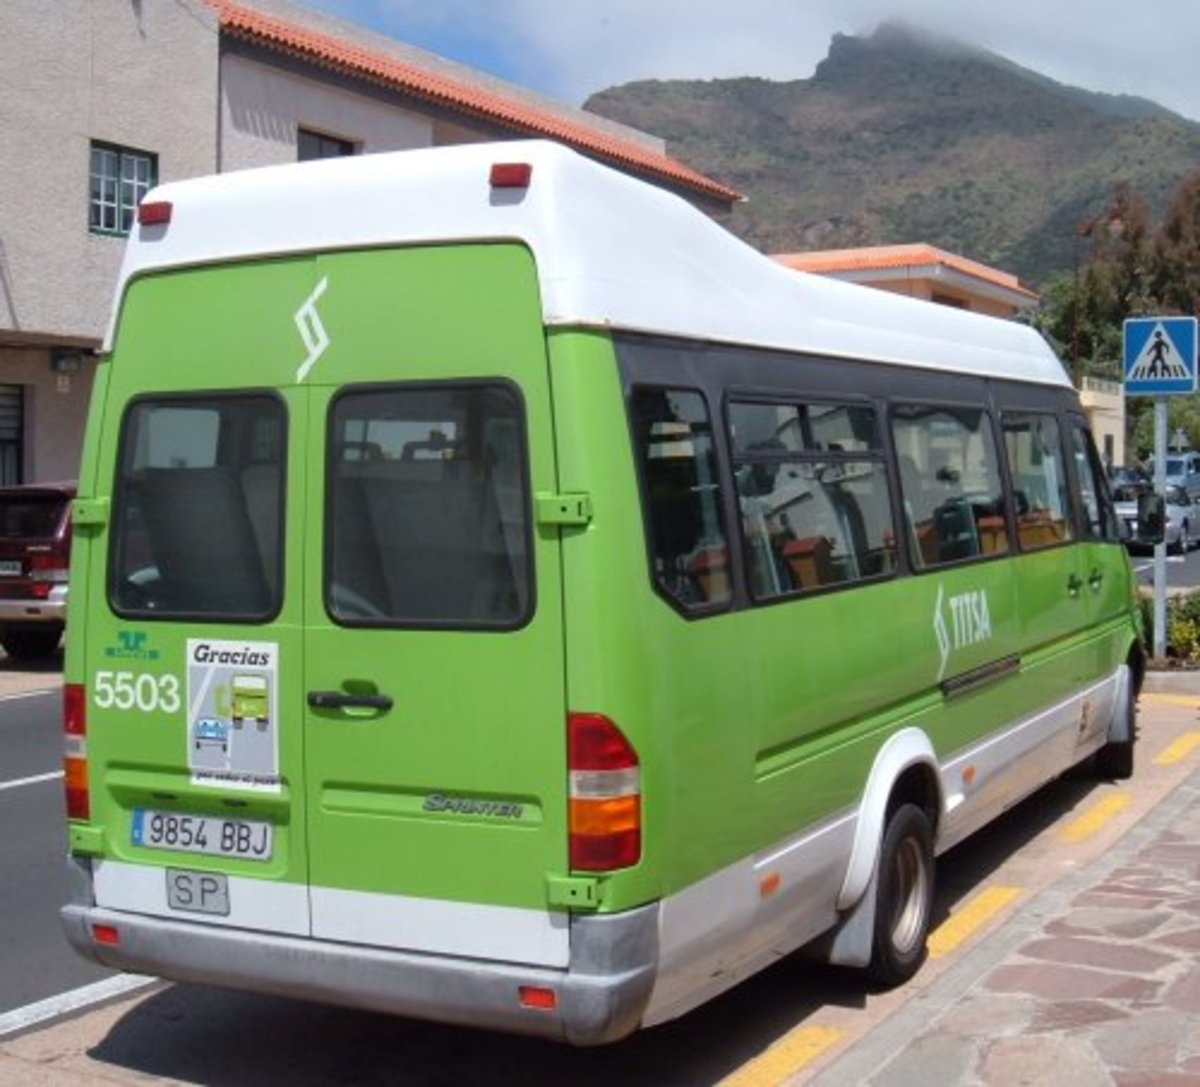 Masca bus Photo by Steve Andrews